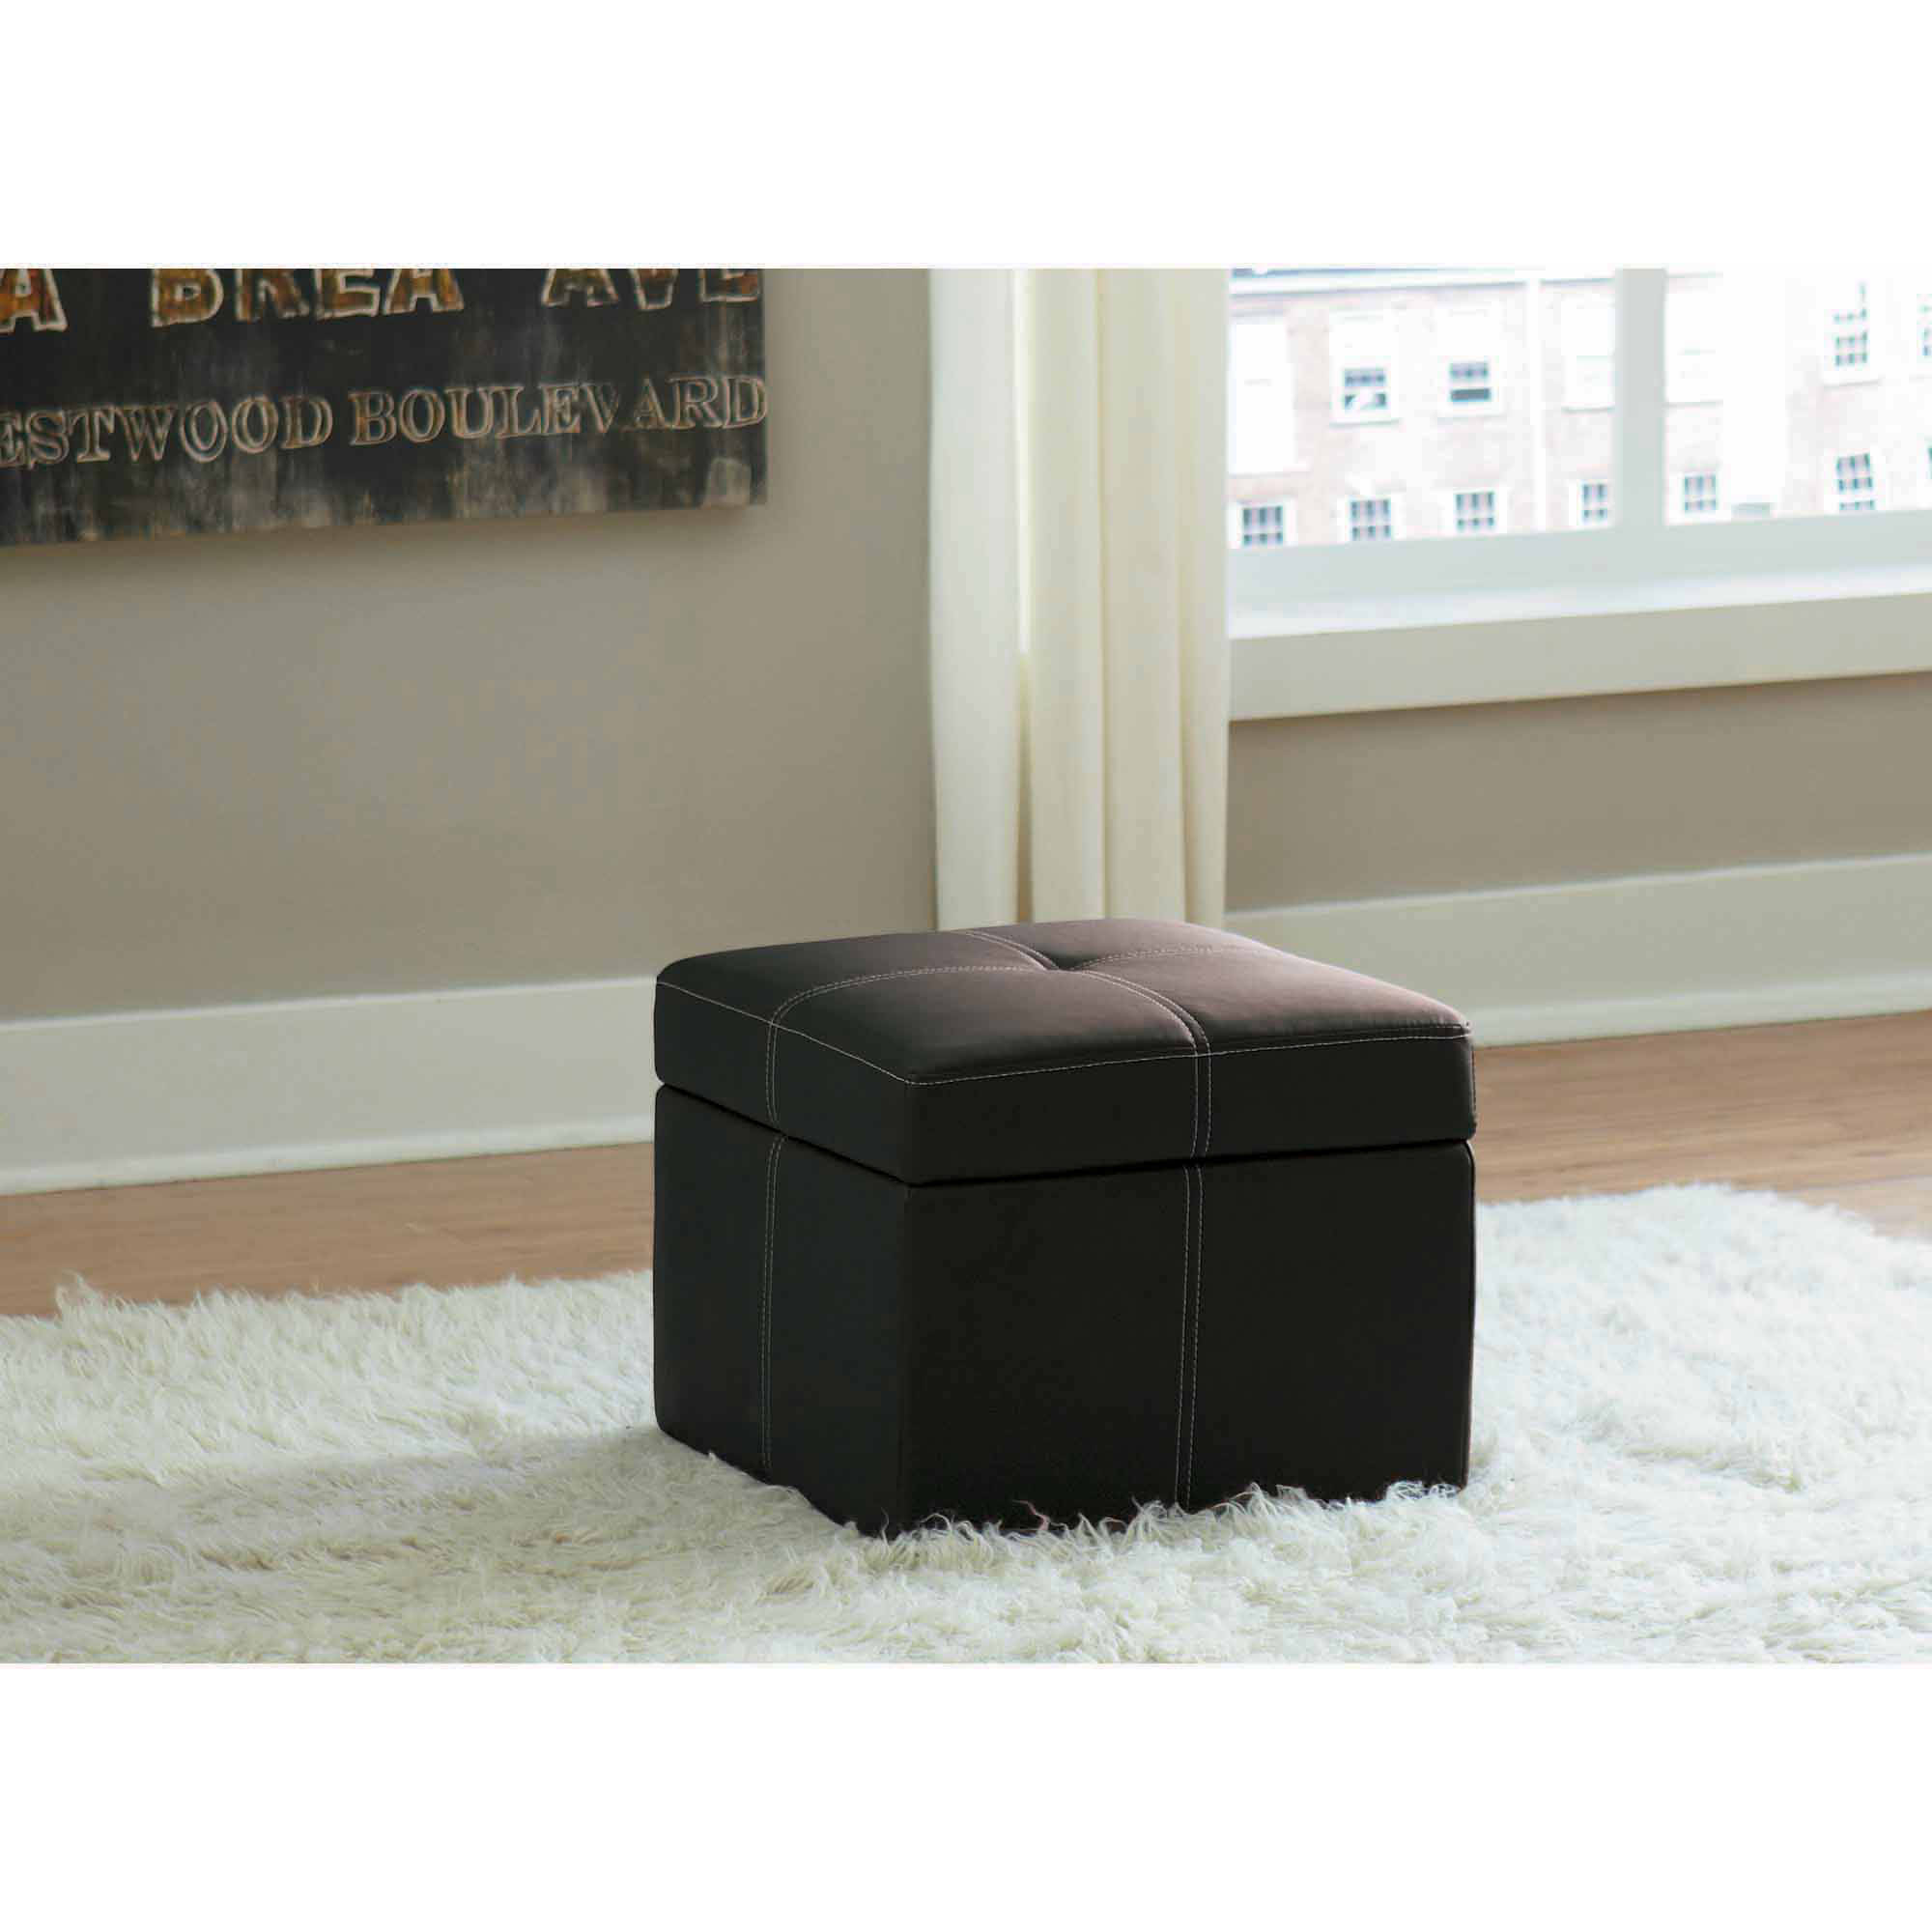 Delaney Small Square Storage Ottoman, Multiple Colors by Dorel Home Products